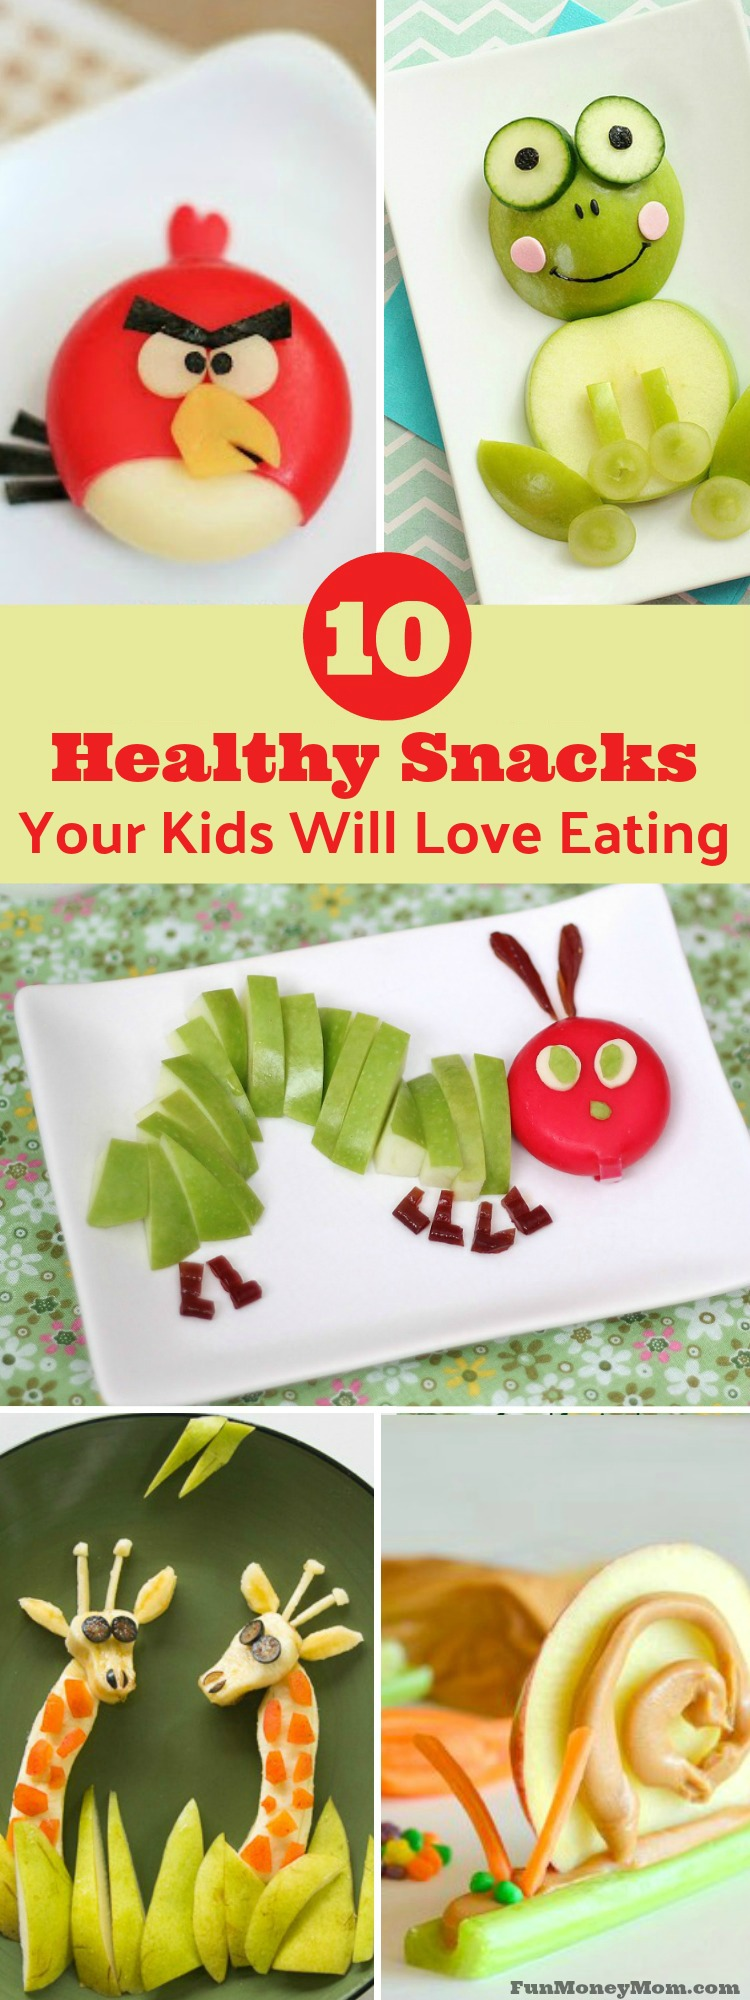 Trying to get your kids to eat healthier? They'll be begging for these healthy snacks!